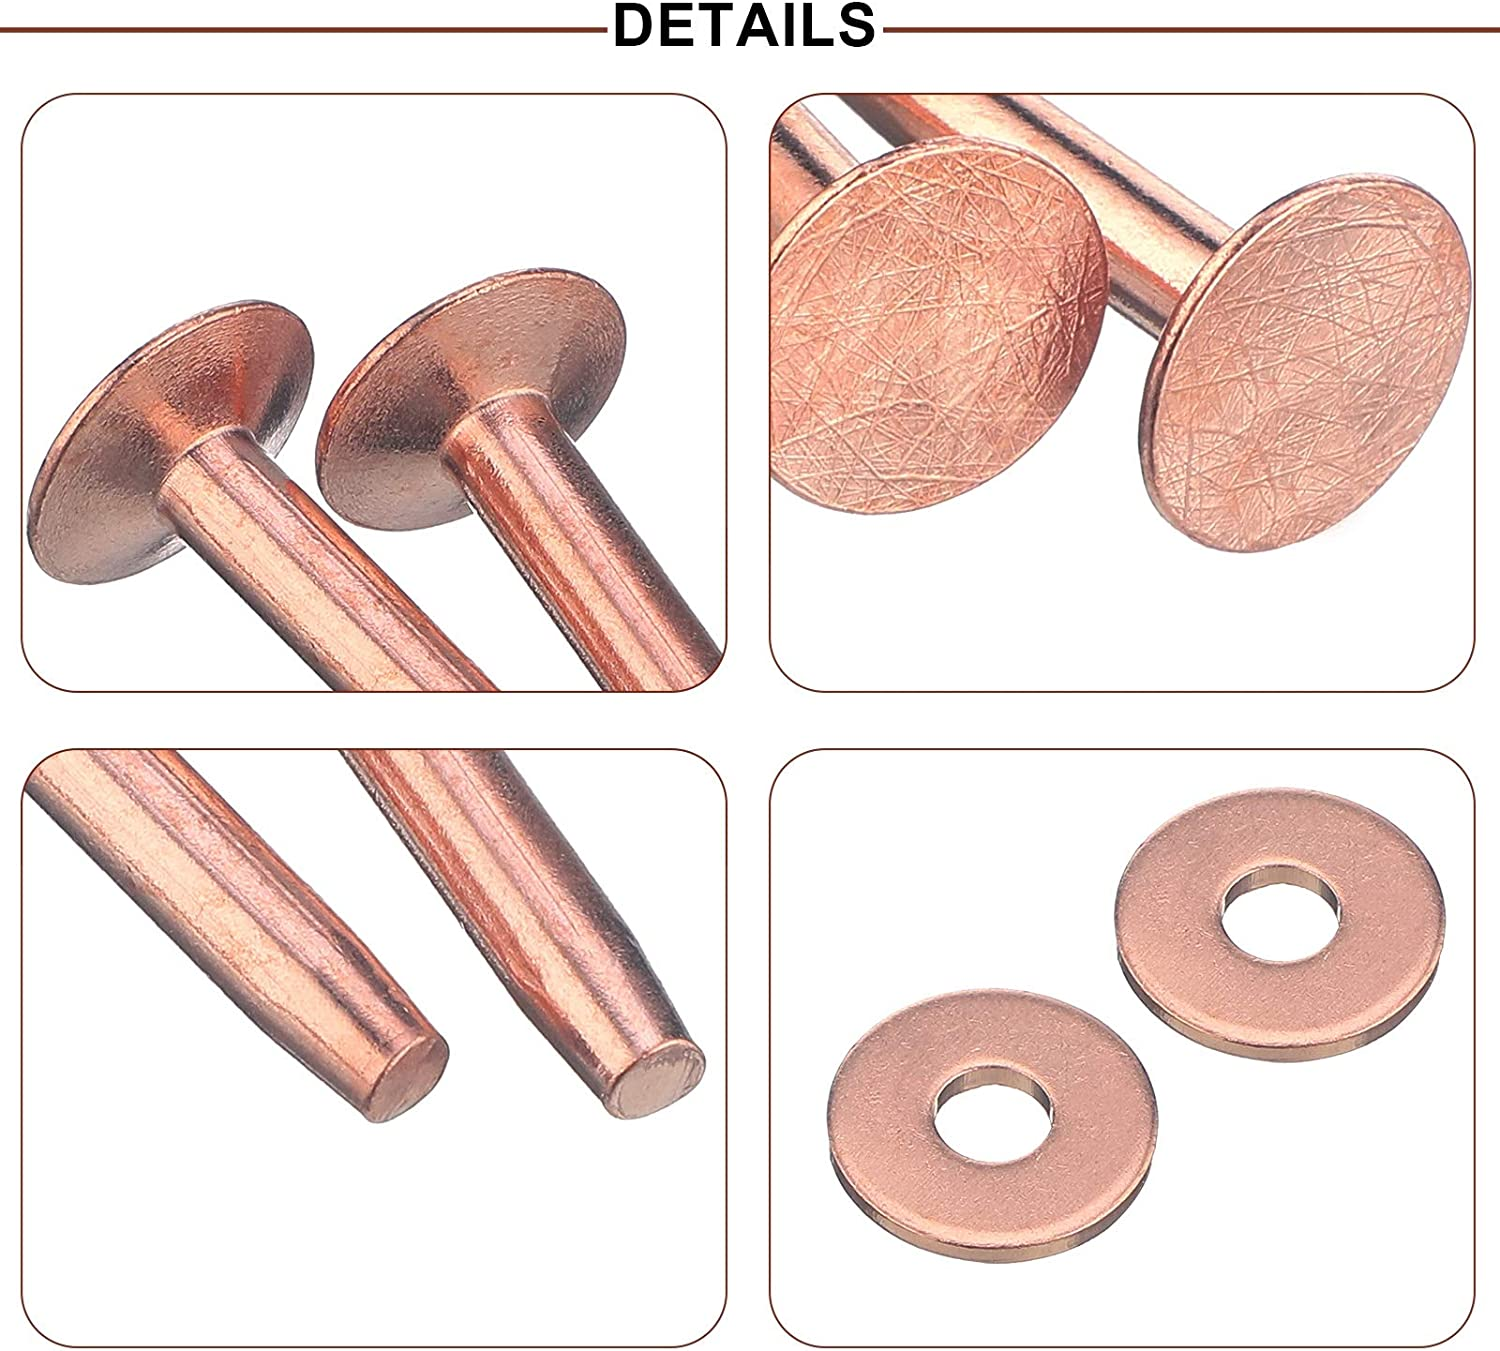 flat head rivets leather fastening includes washers flat top rivets 50 pack rivet leather copper rivets 332 x 316